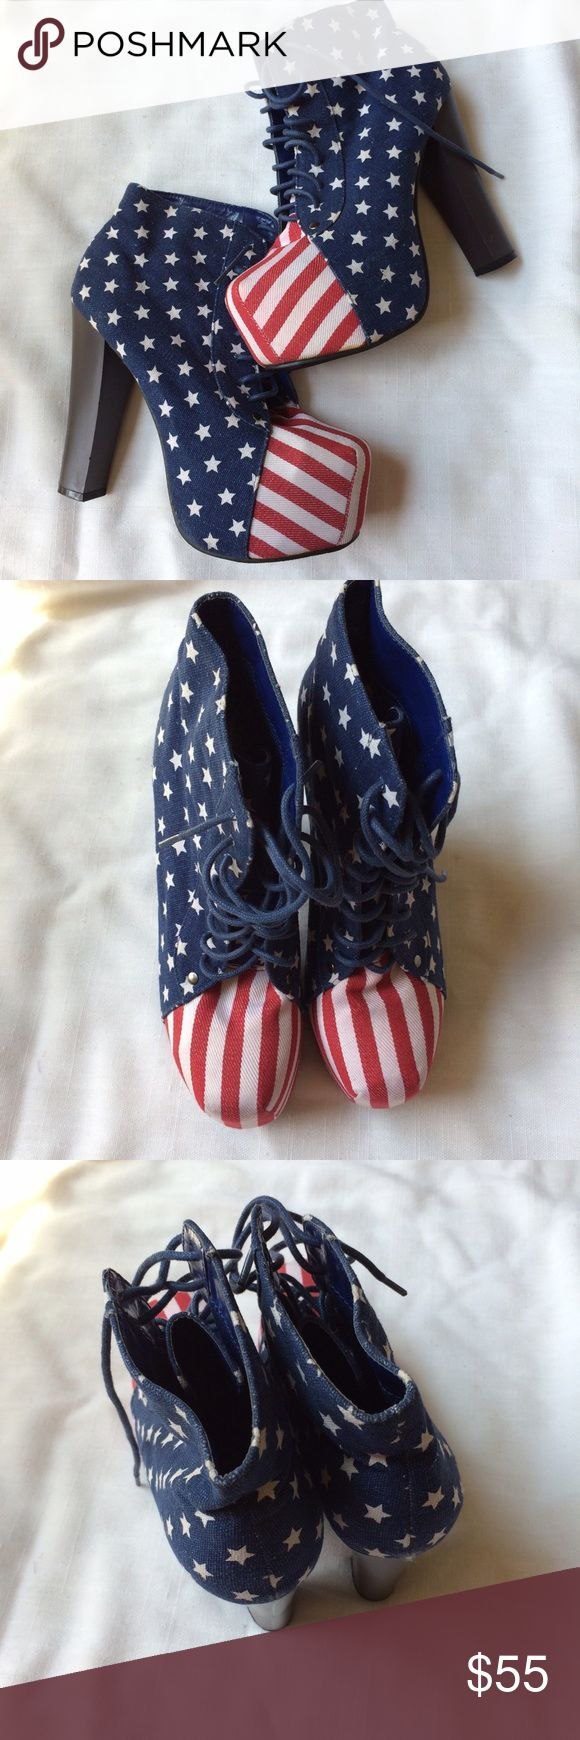 "American Flag High Heels Lace-Up Sz 8 Very good condition. Heel height 5.5."" Shoes Lace Up Boots"